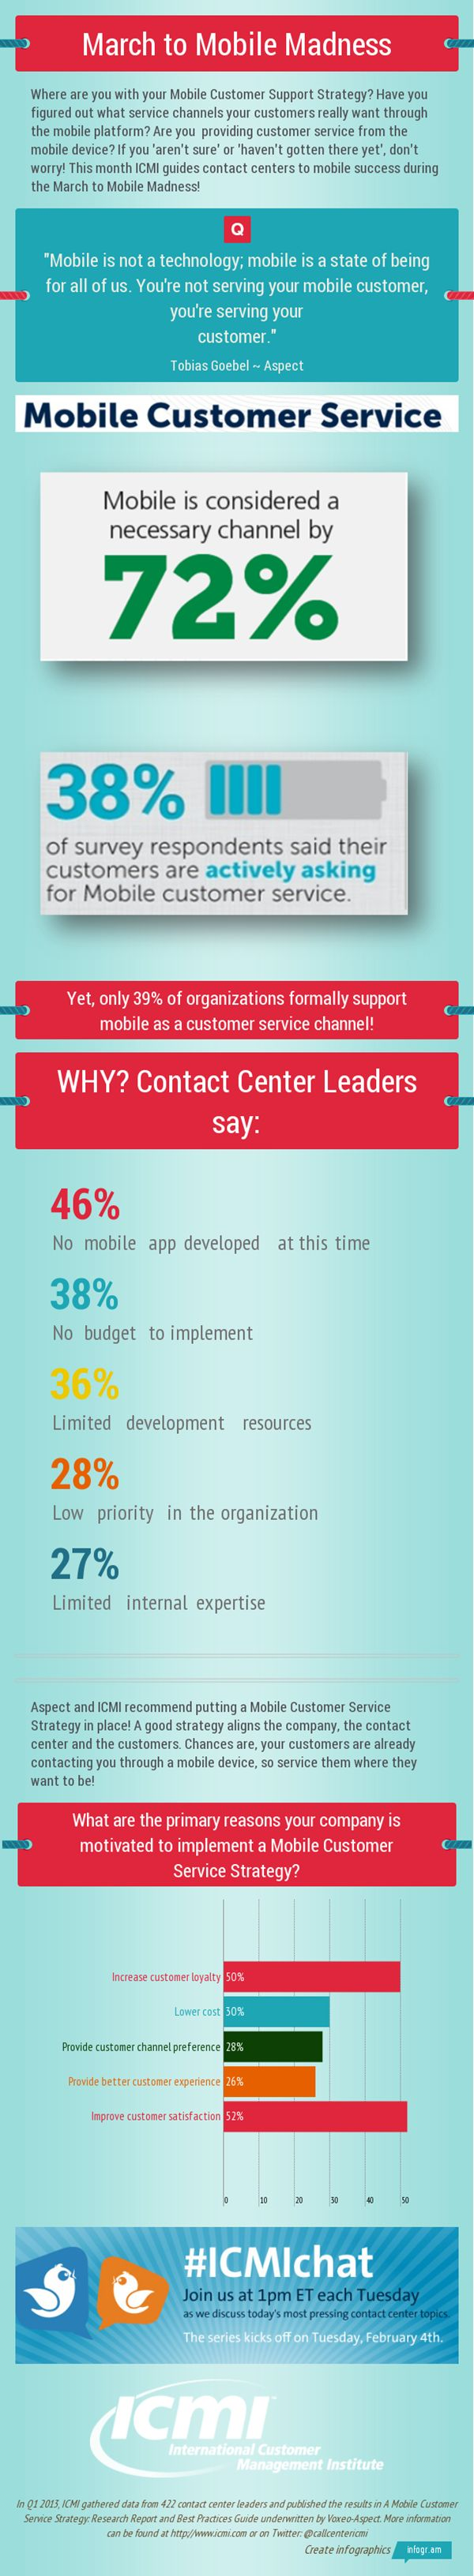 Where are you with your mobile customer support strategy? #mobile #cctr